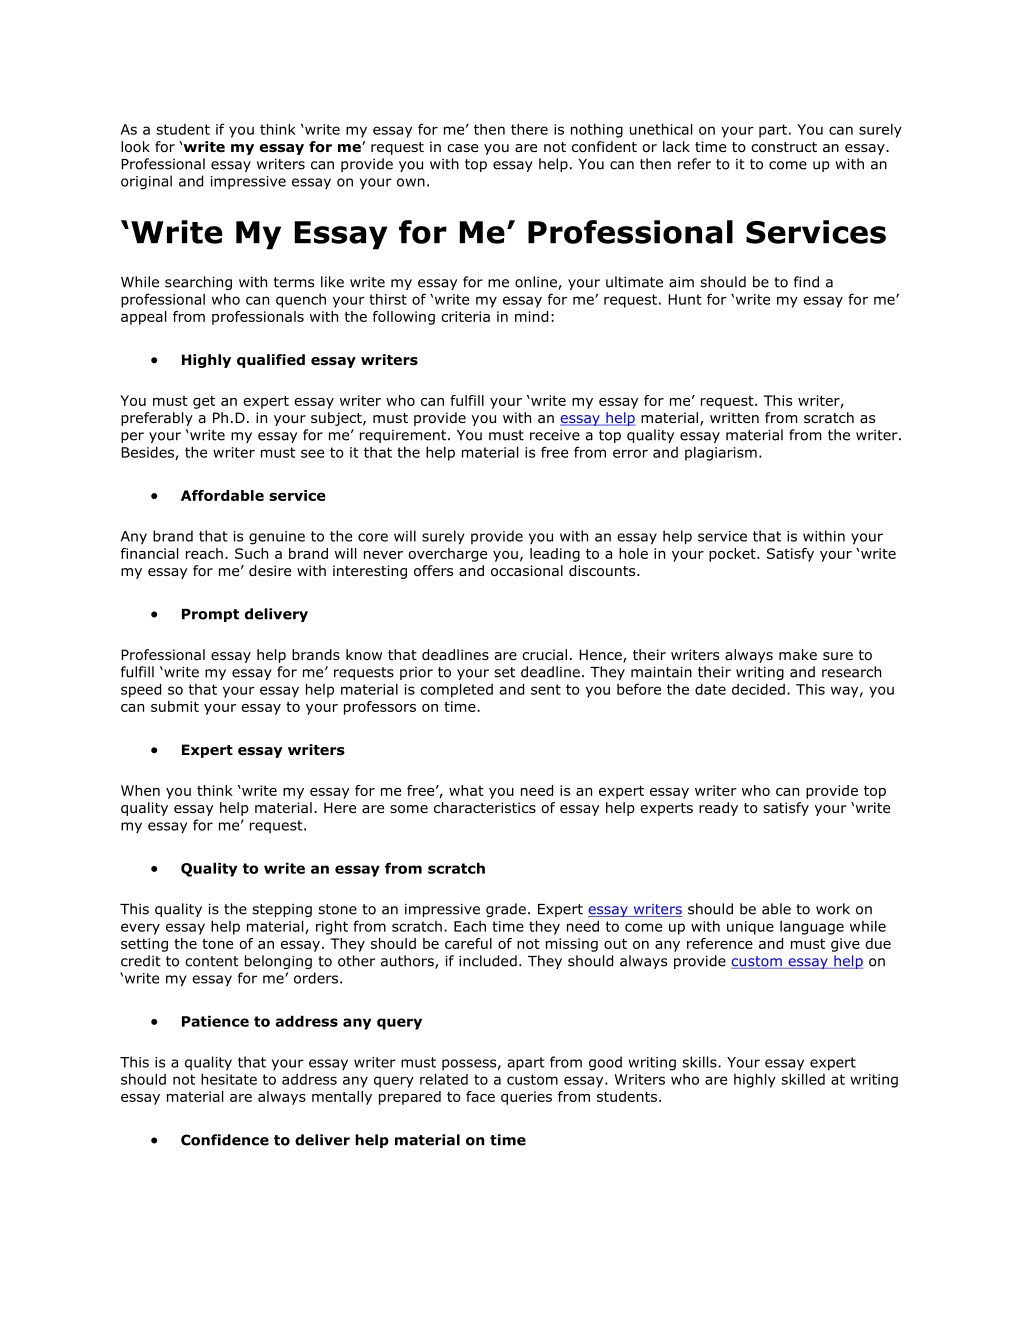 017 Write My Essay For Me Example As Student If You Think Surprising App Free Uk Full